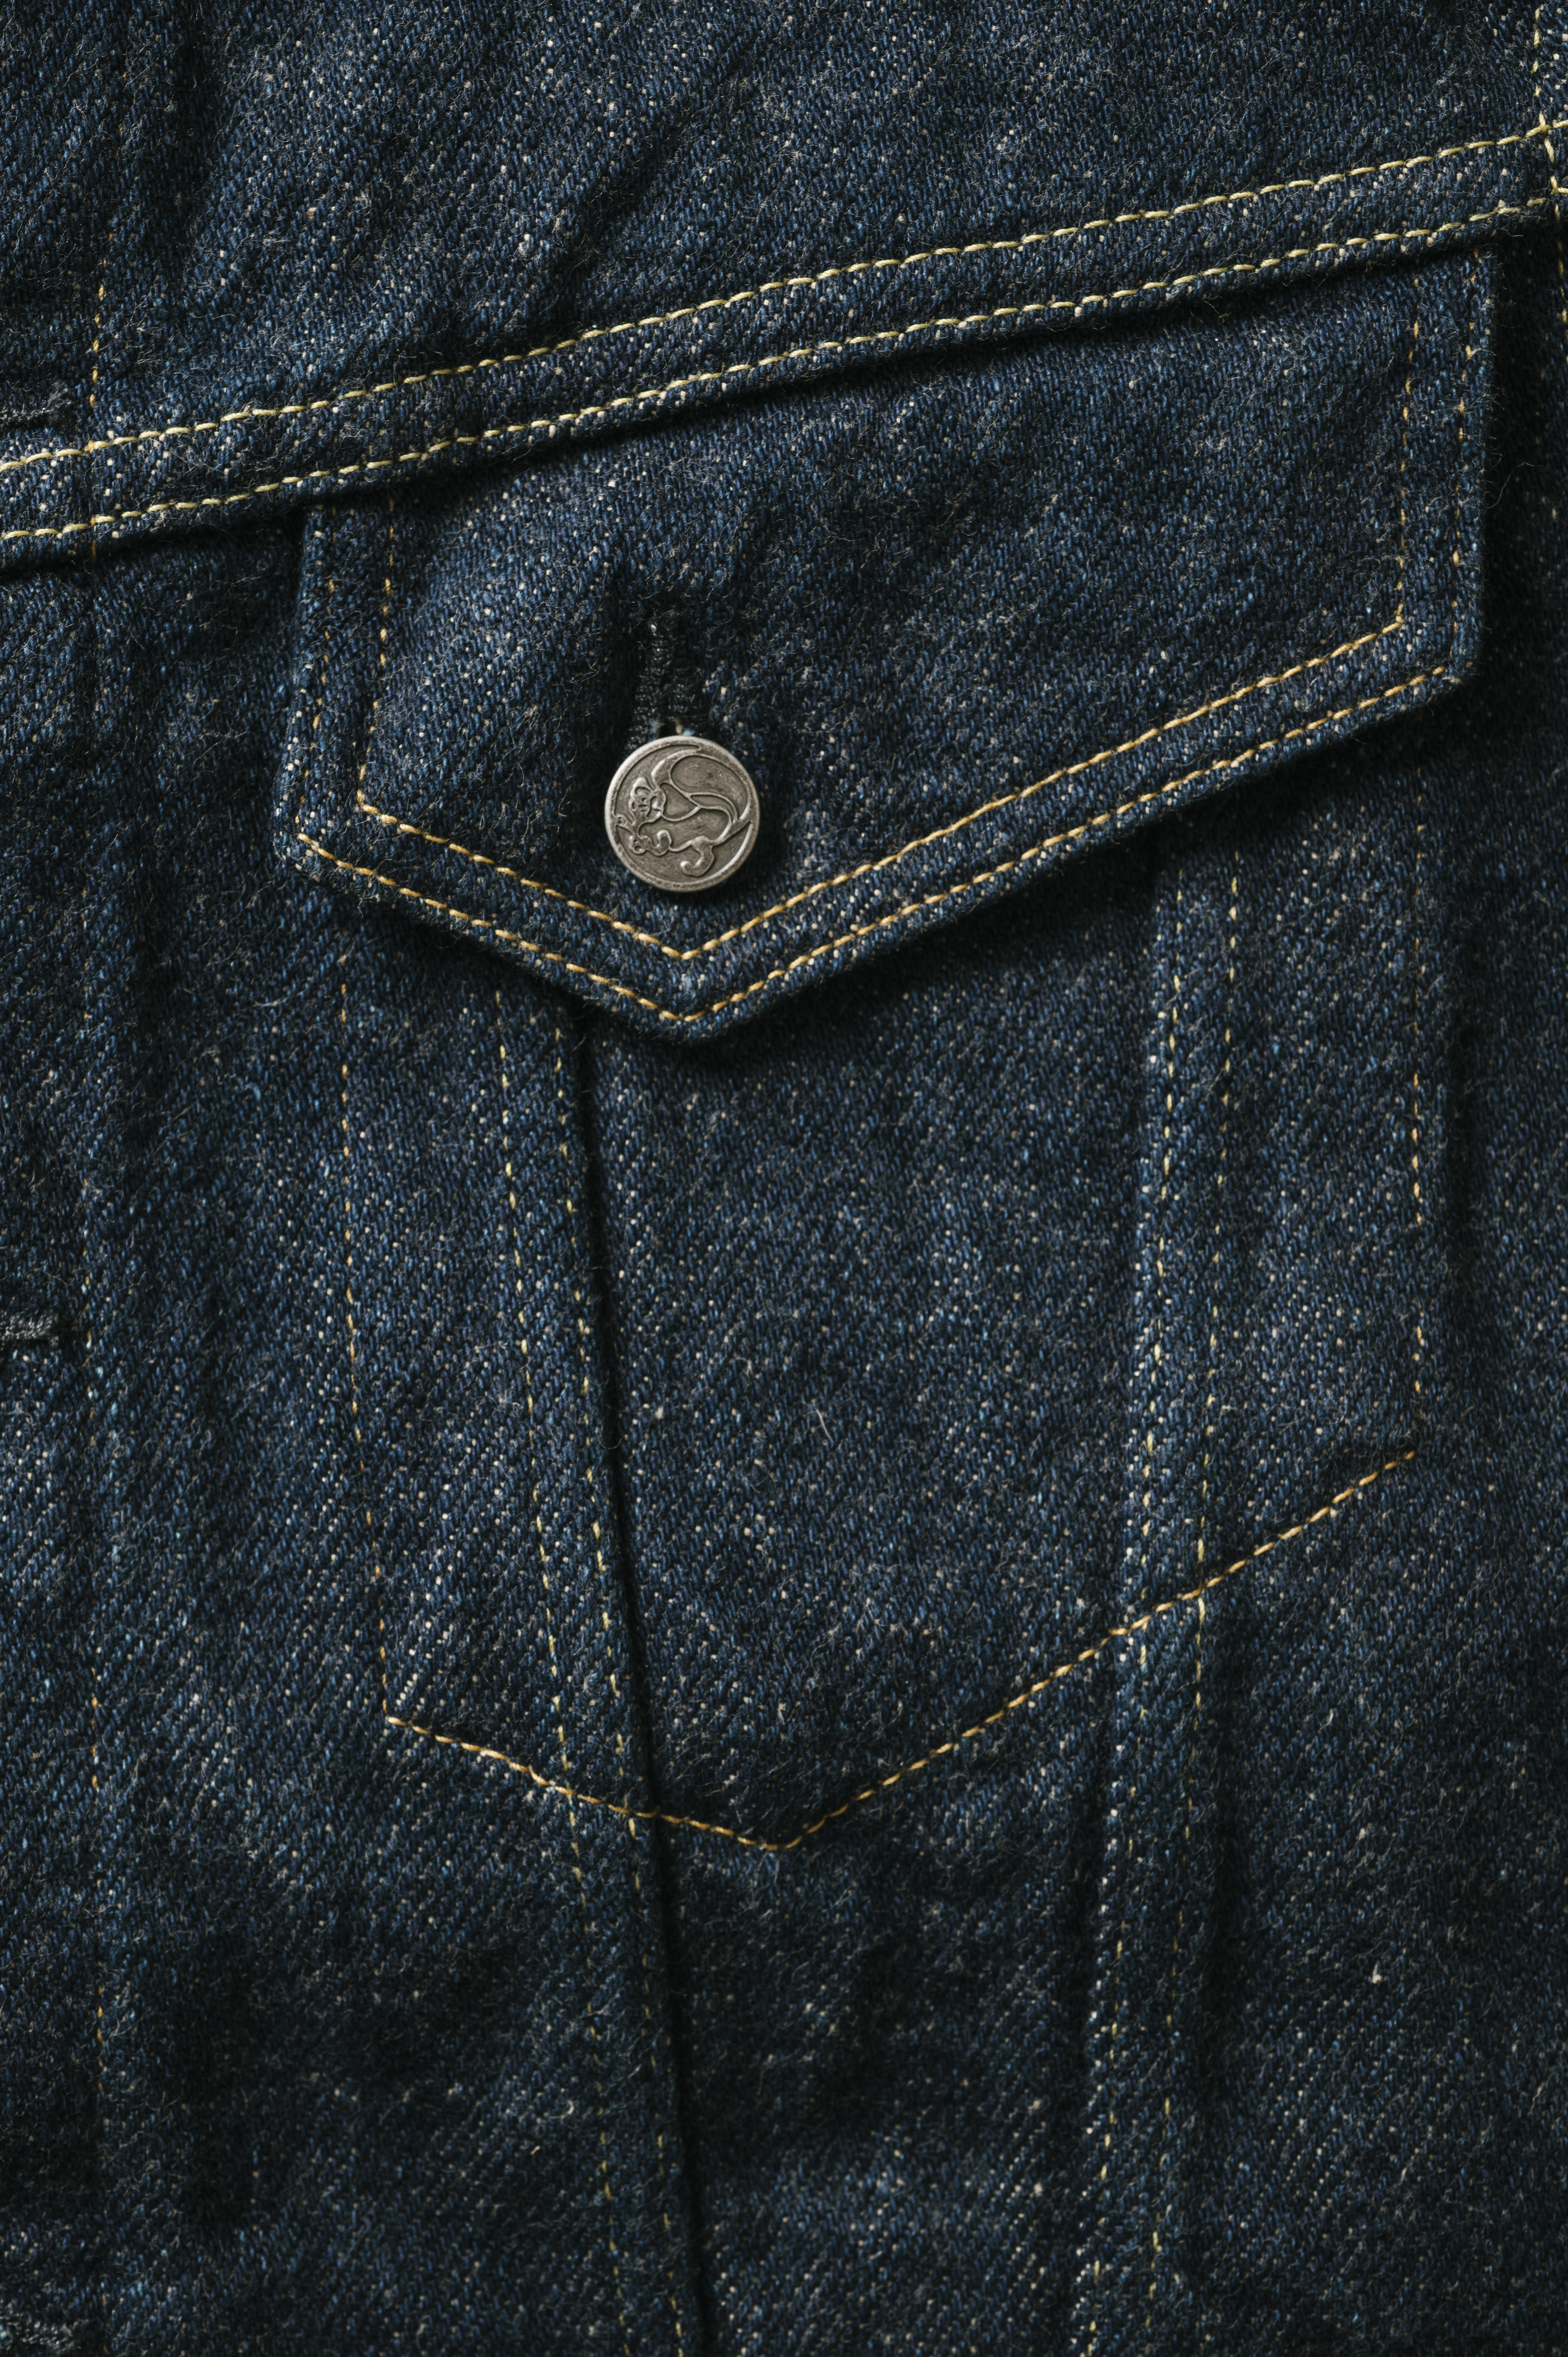 OTJKT3 ONI x TANUKI Collaboration 21.5oz Secret Denim Signature 3rd Jacket with handwarmers,, large image number 4